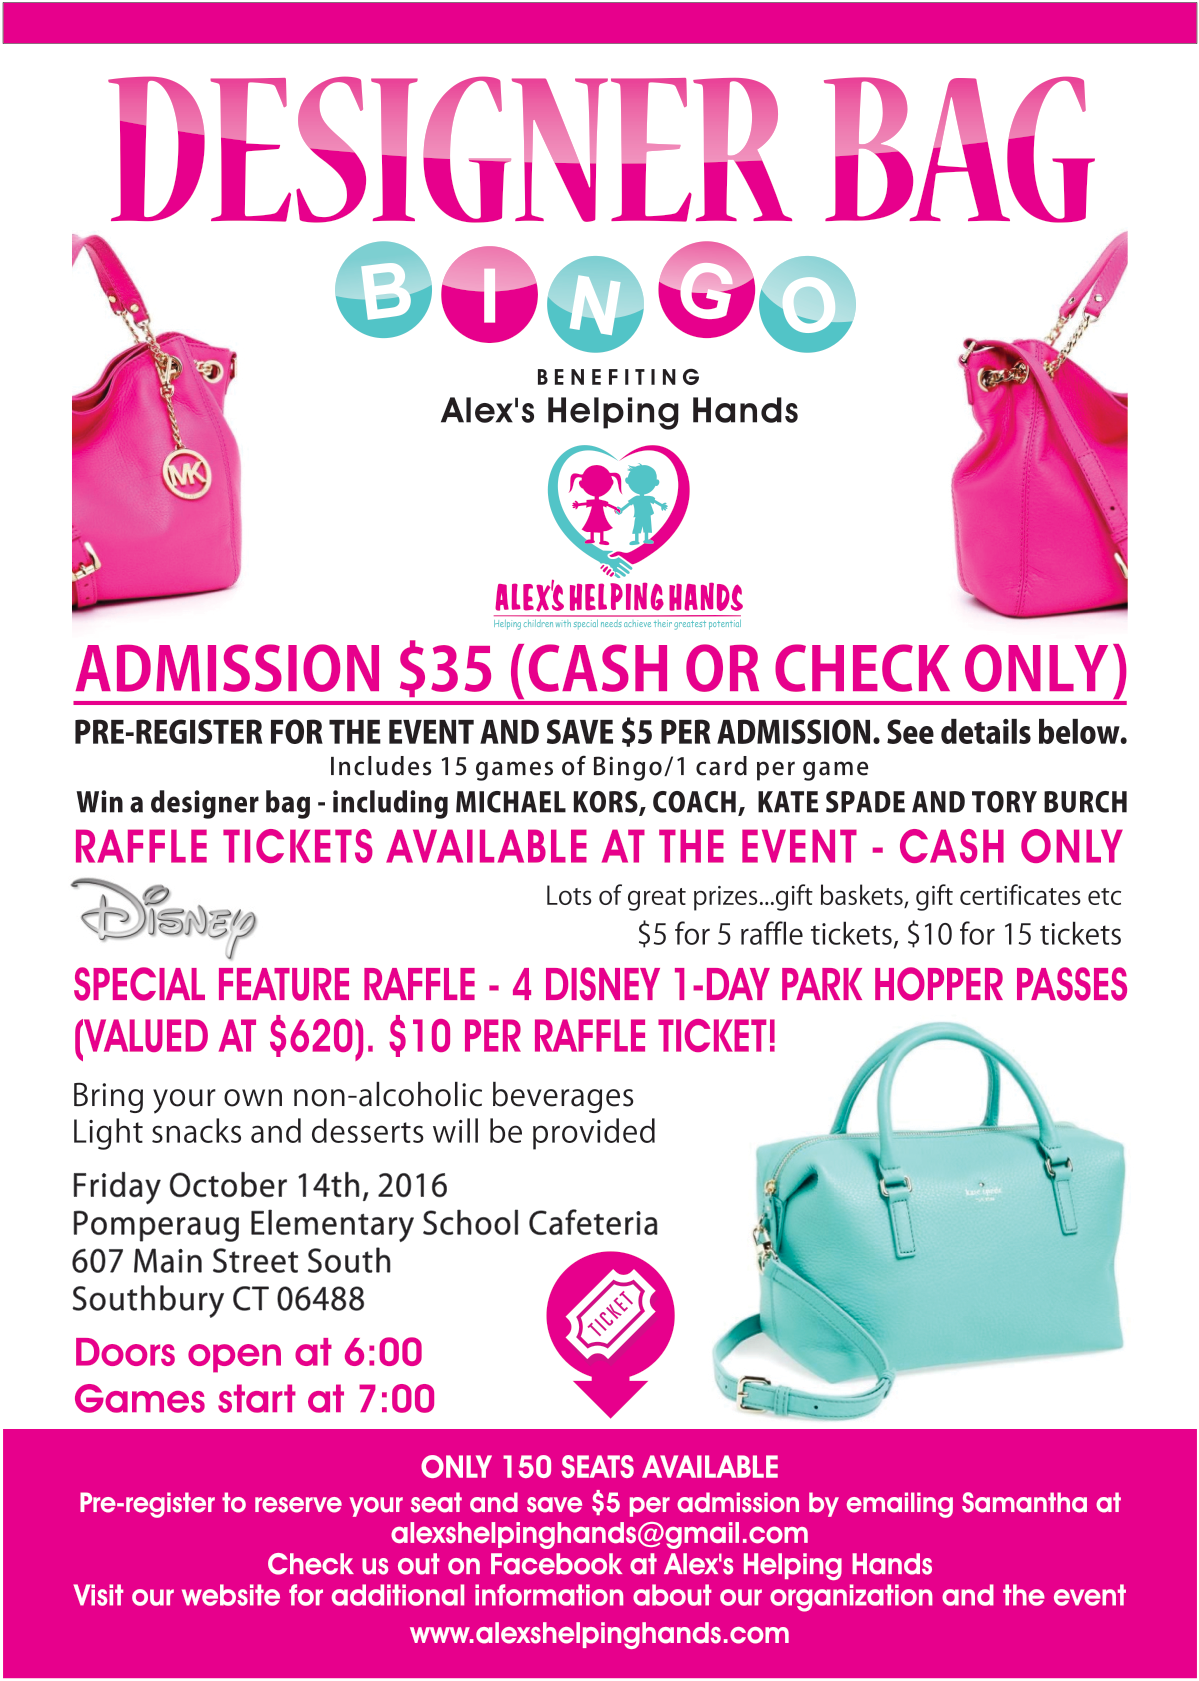 Flyer for Designer Bag Bingo benefitting Alex's Helping Hands